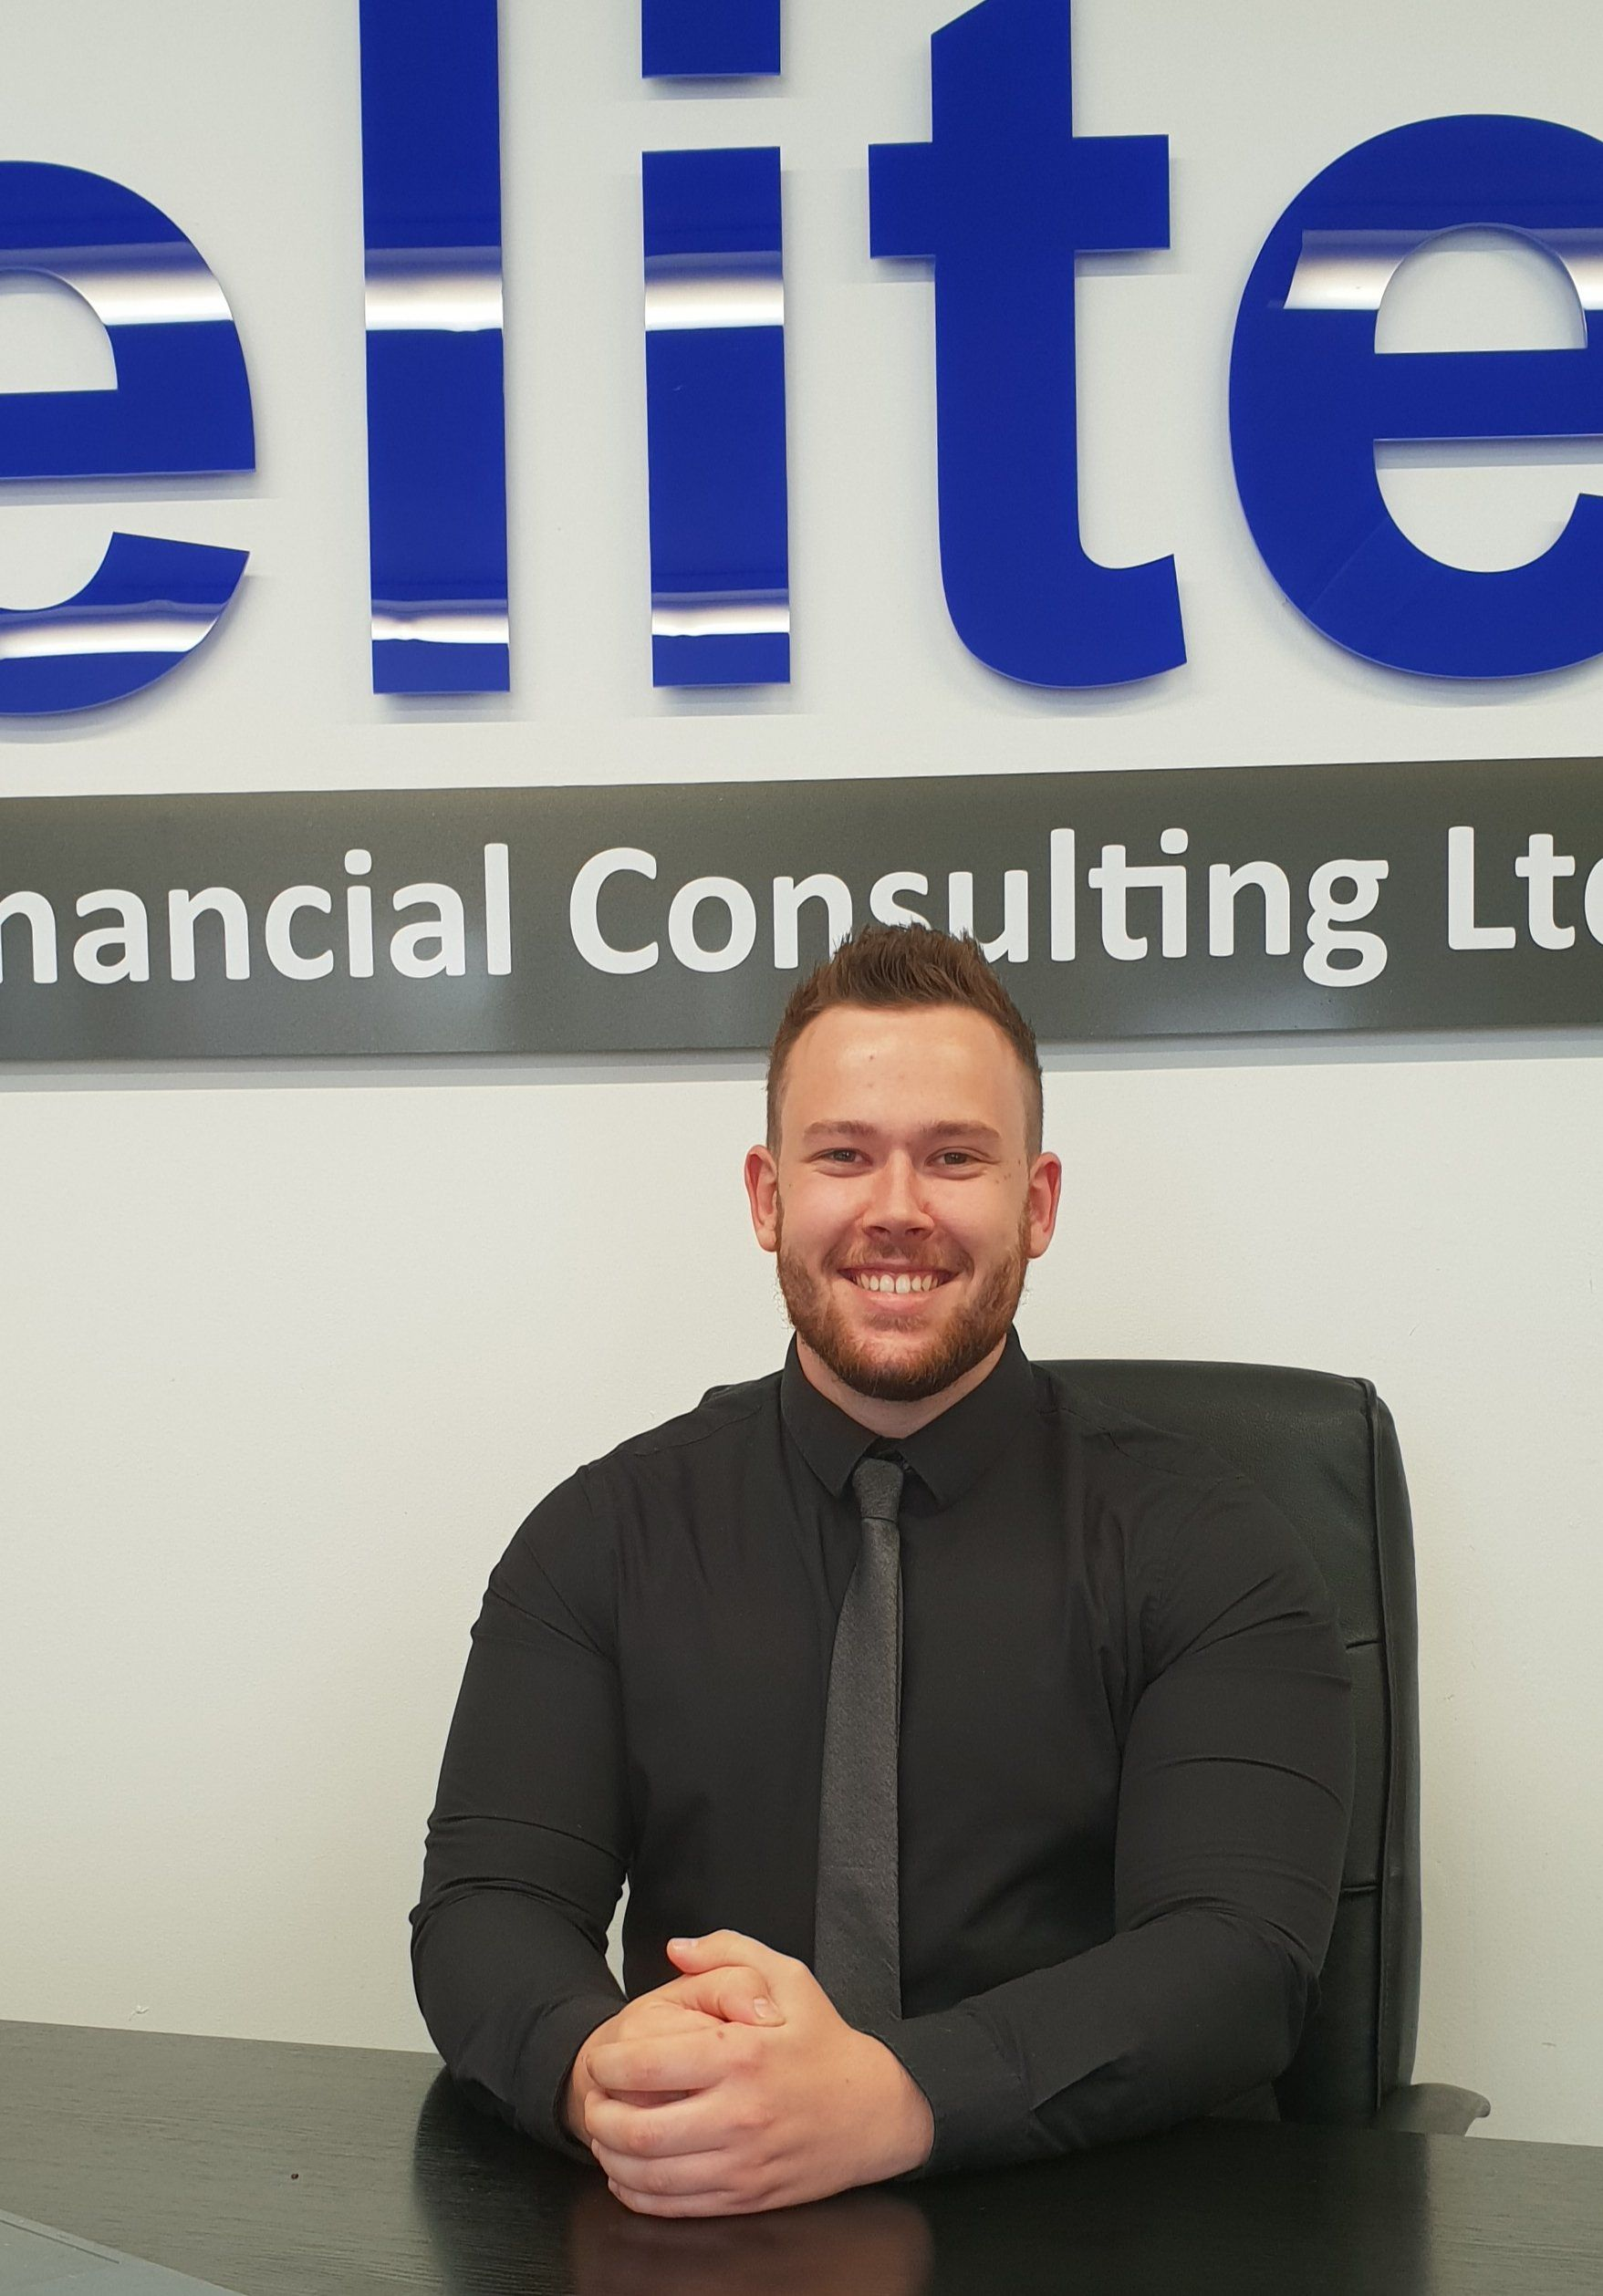 About Elite Financial Consulting | Independent Financial